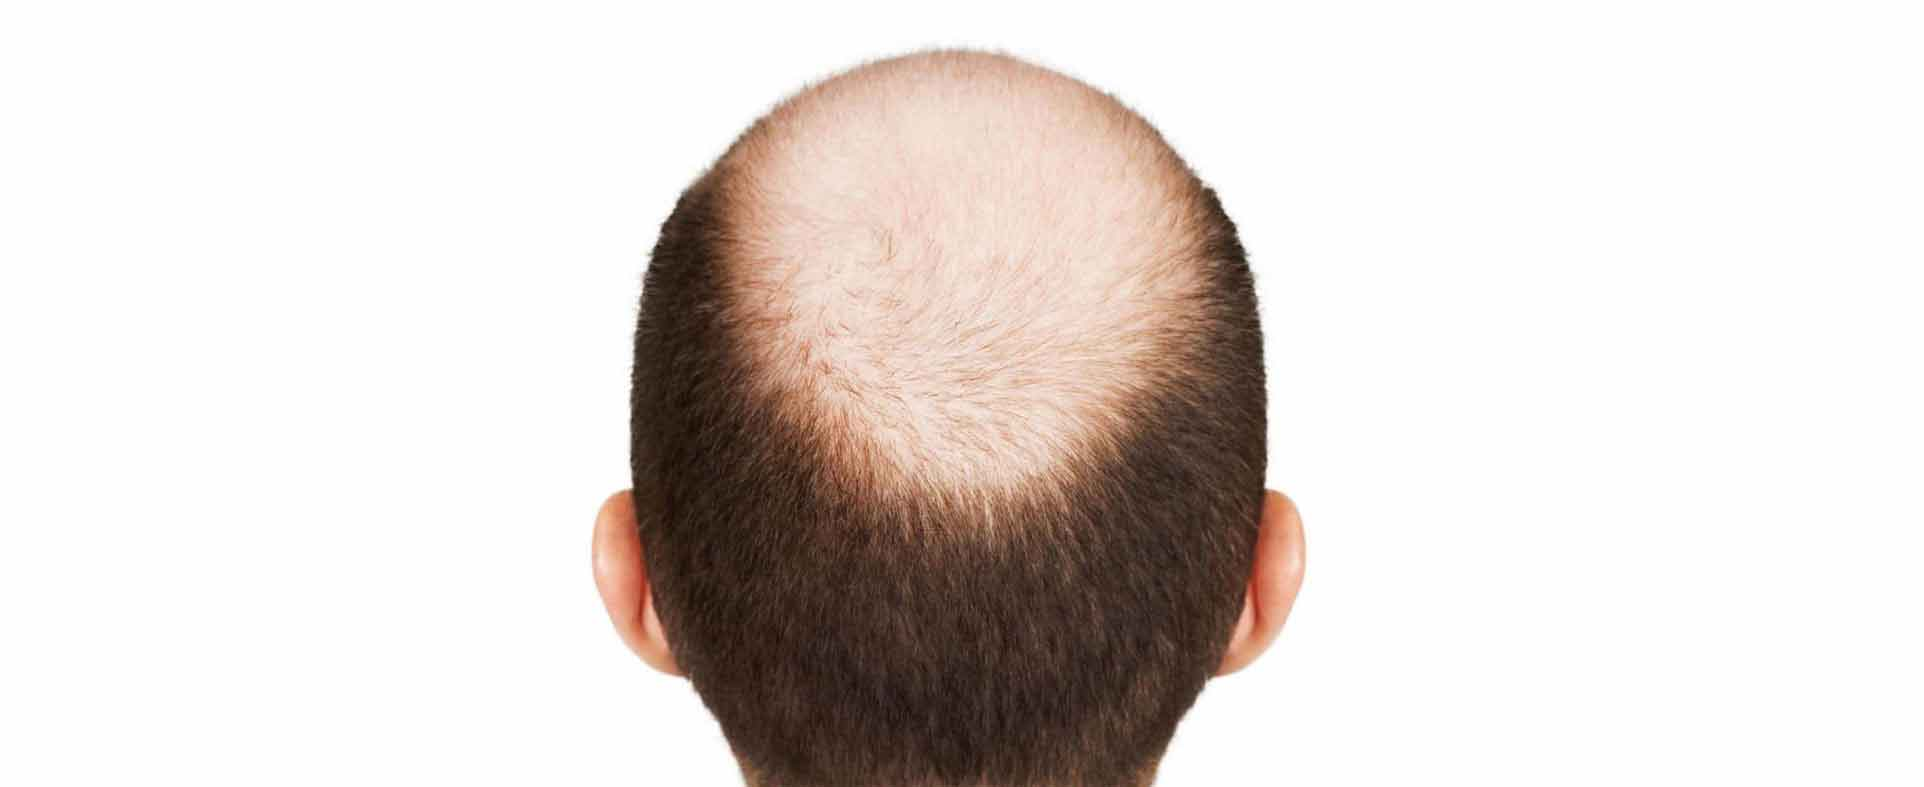 Hair Restoration | Hair Transplantation and Fixing | Non-surgical Treatment Centre